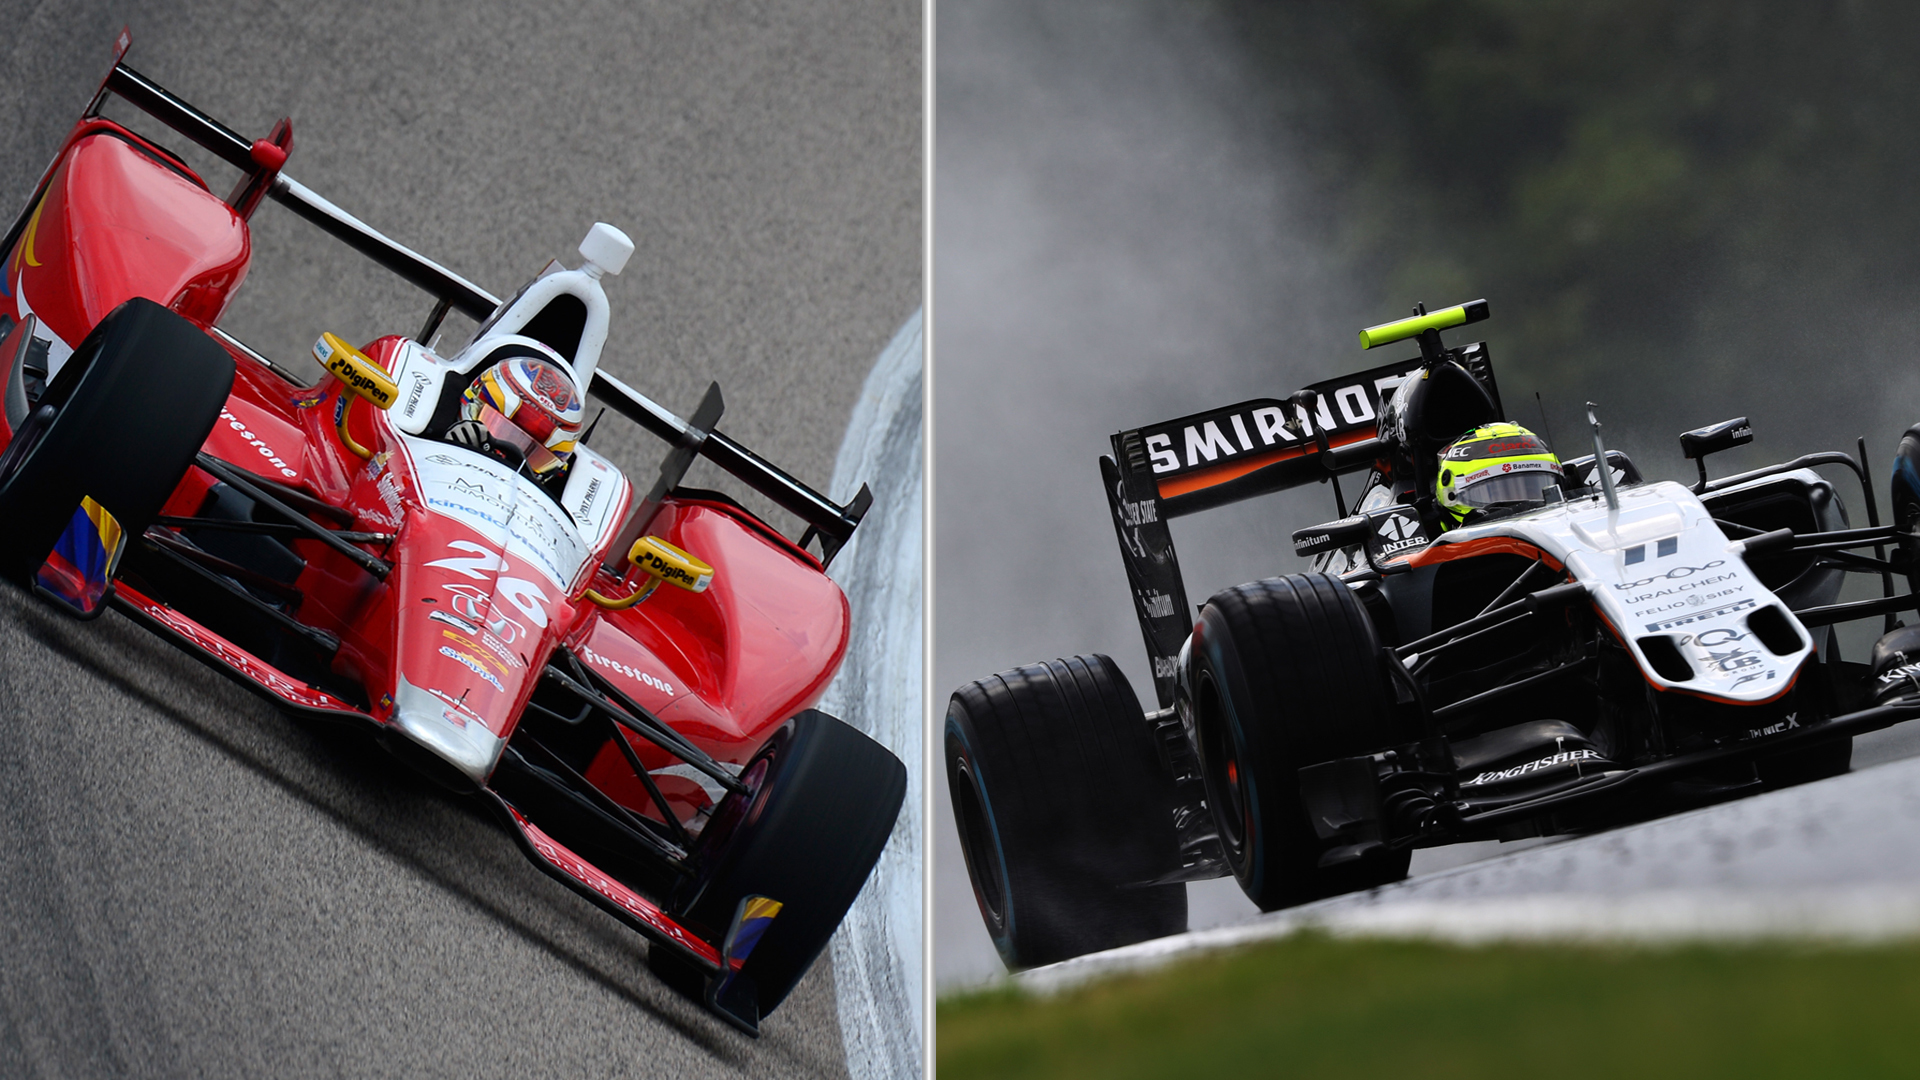 Ever Wonder What S The Difference Between F1 And Indycar Races Nbc Sports